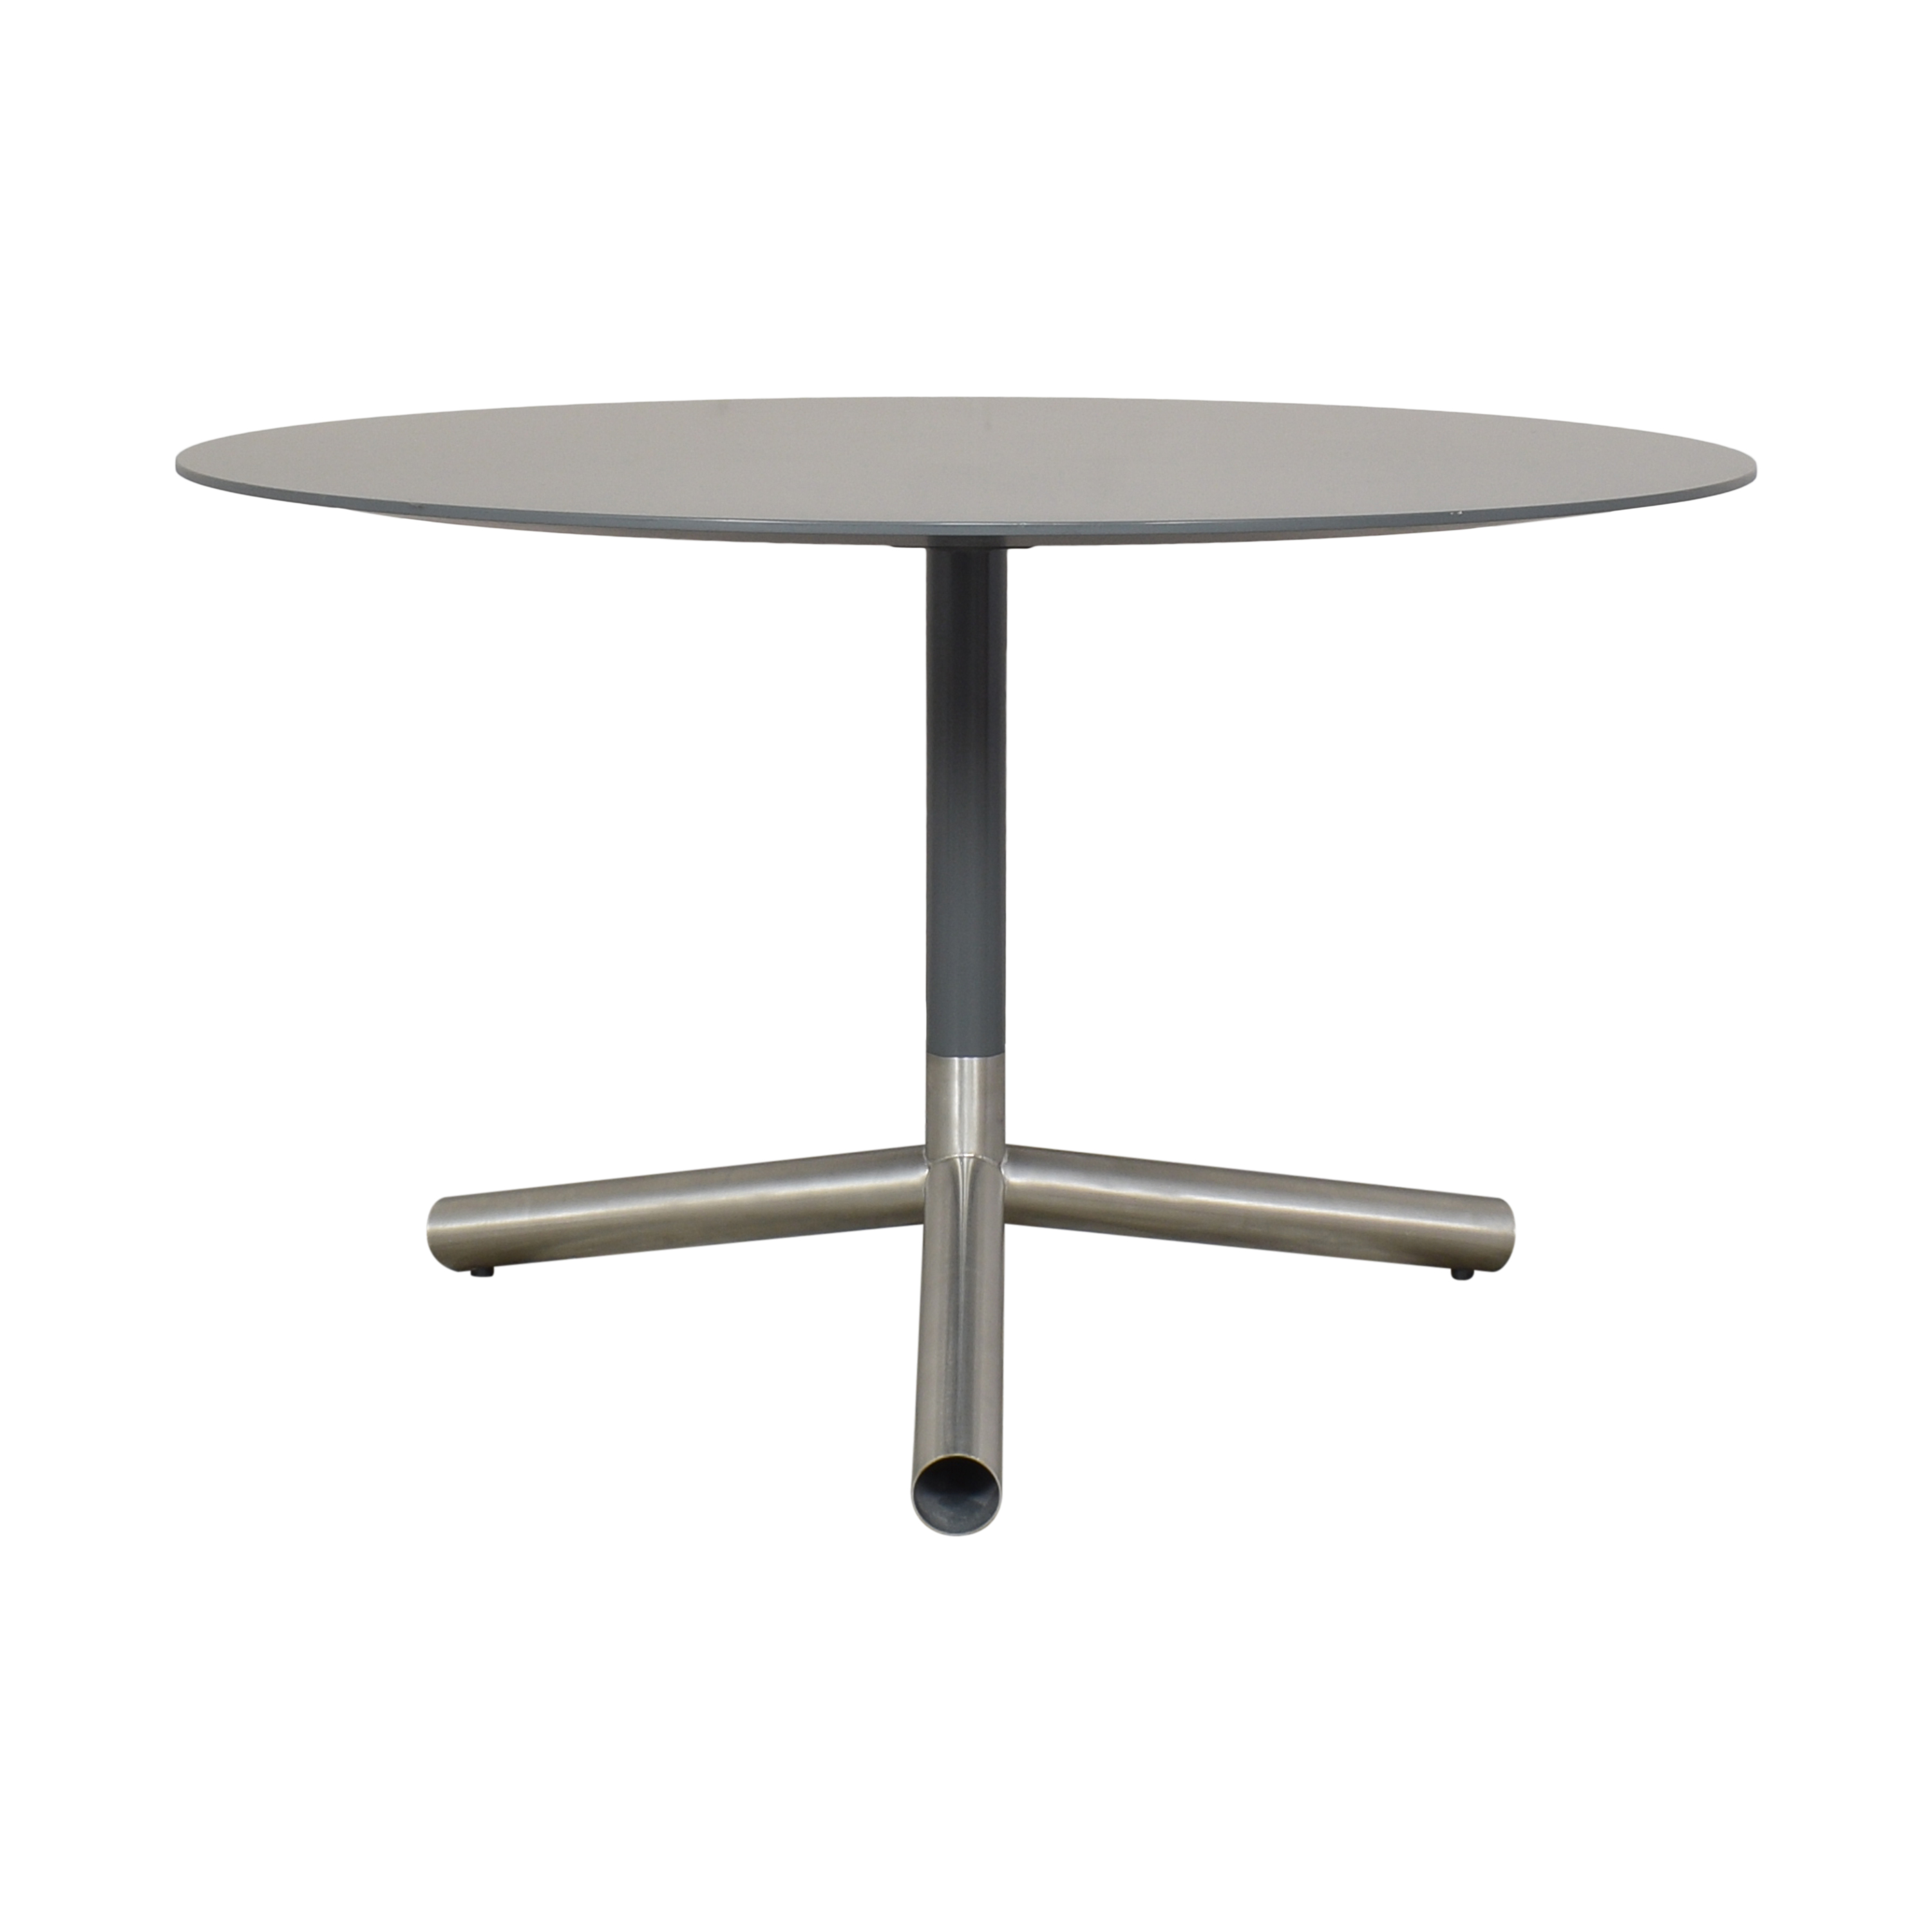 shop Blu Dot Blu Dot Sprout Round Dining Table online